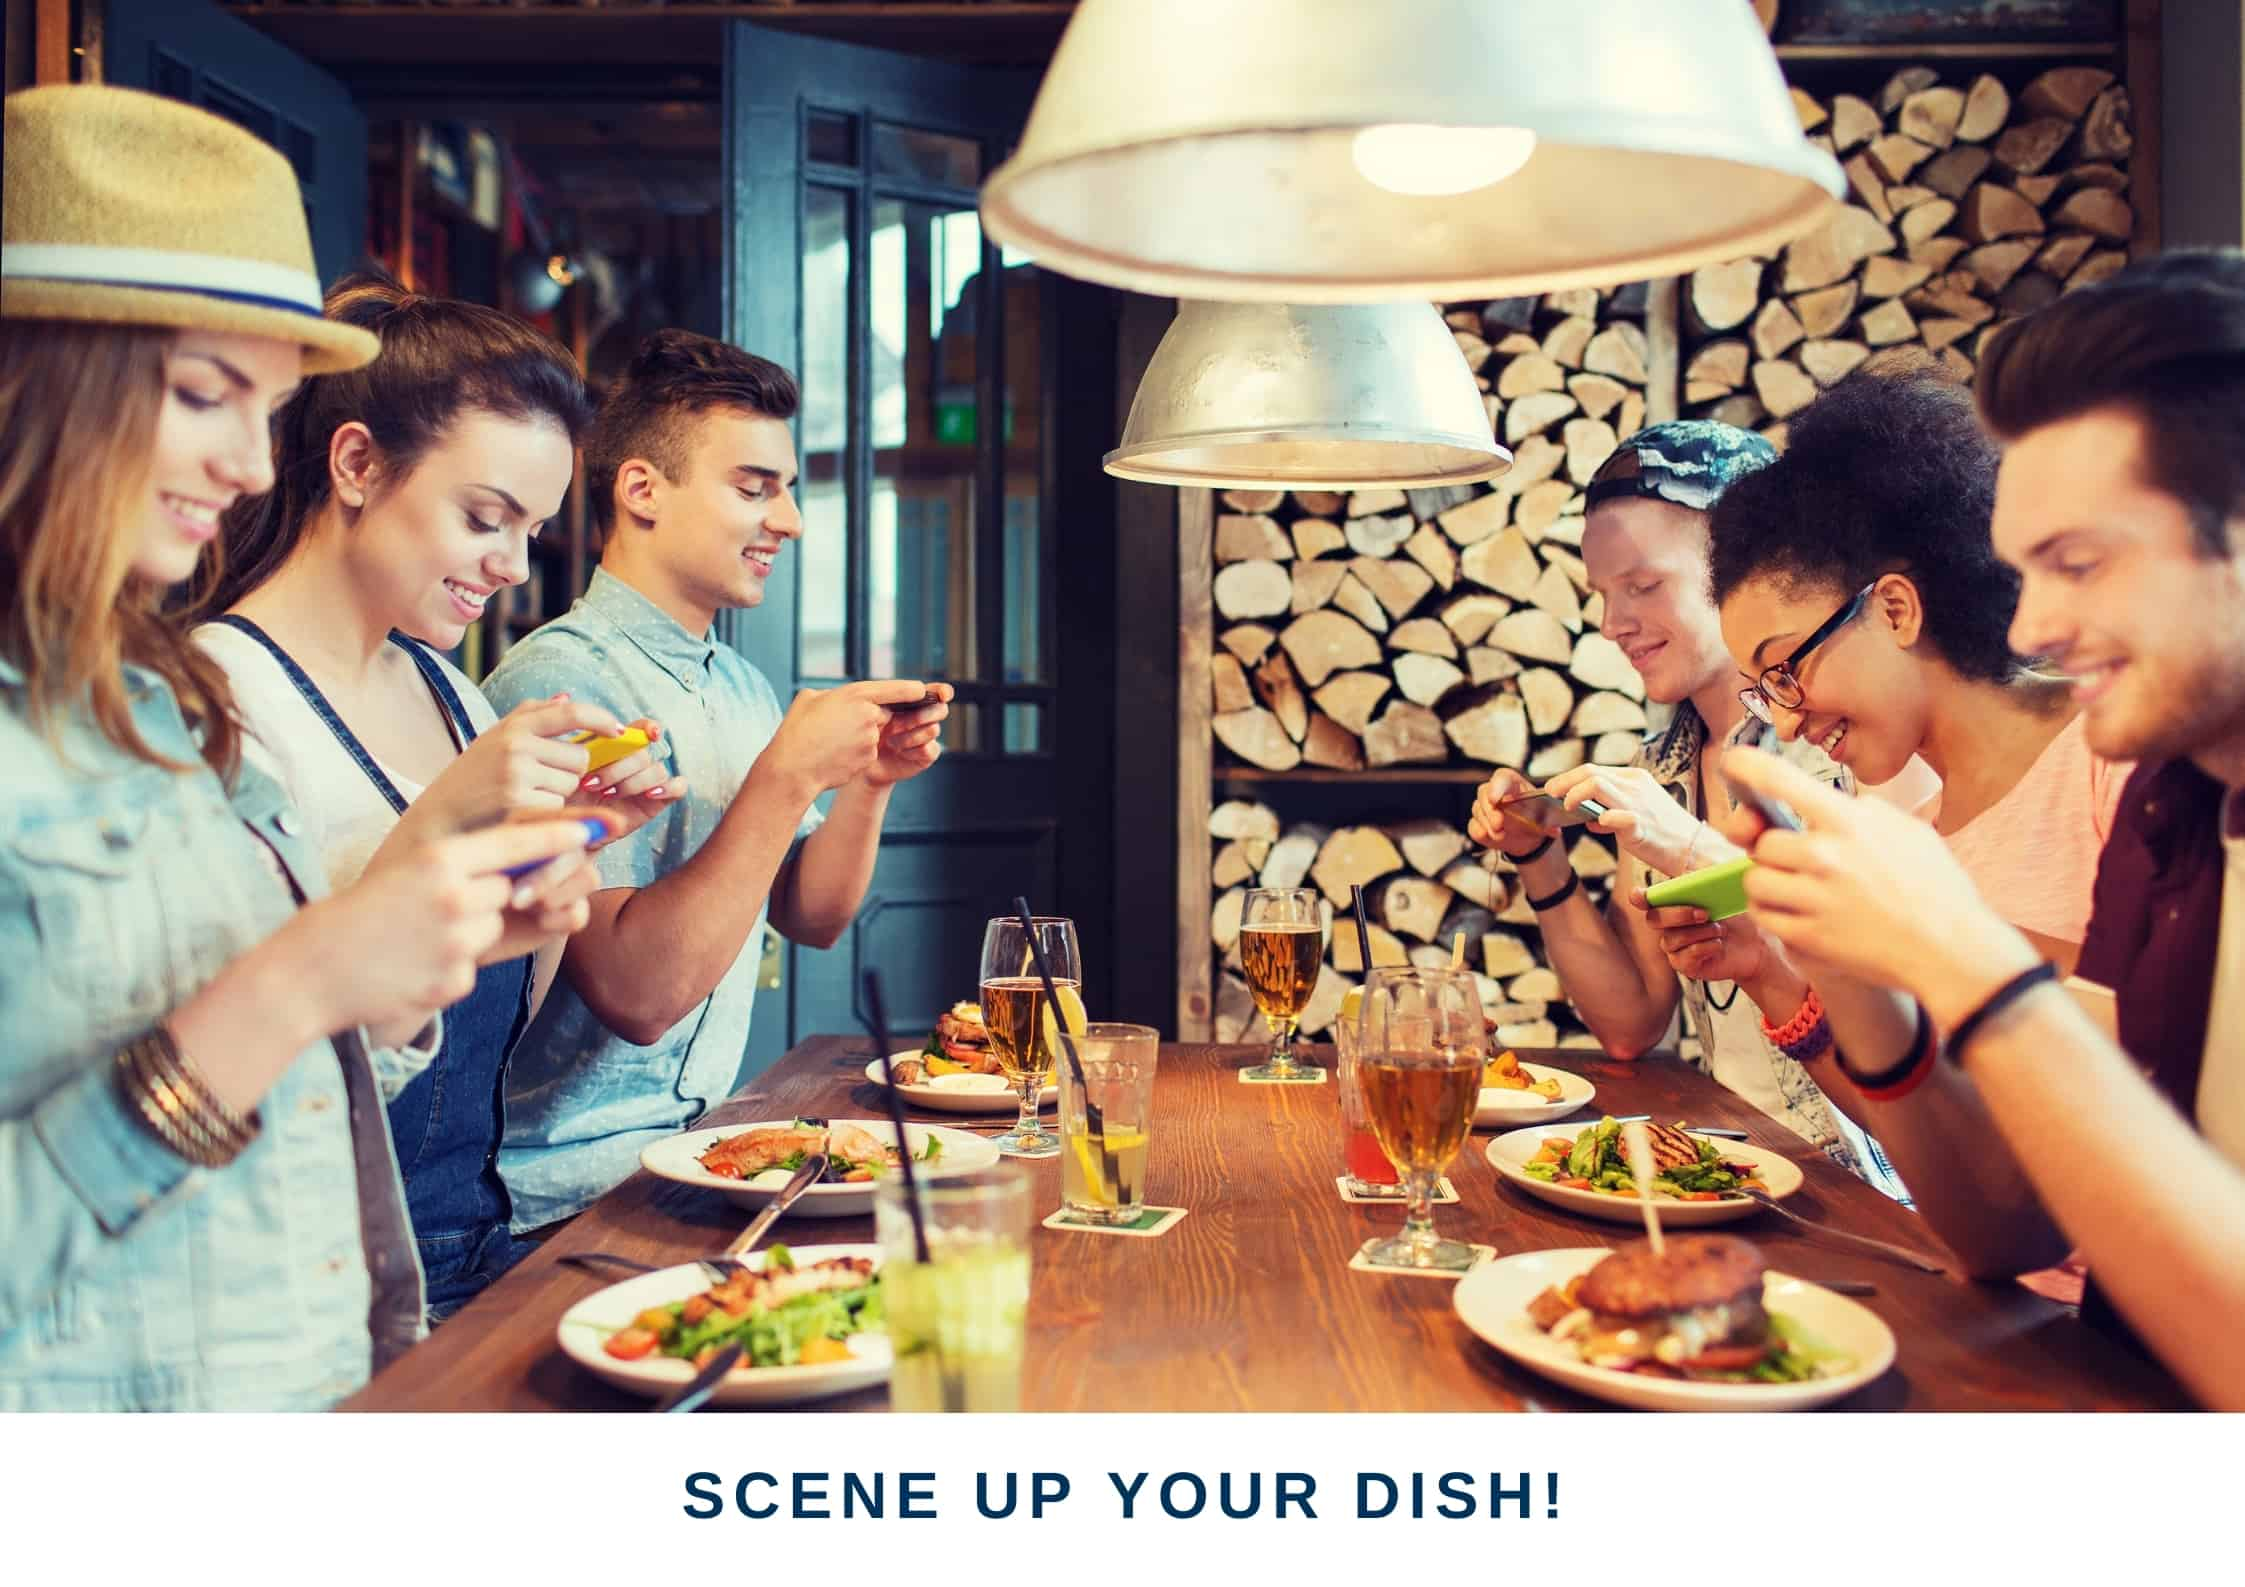 Food Photography With Phone | THE PHOTOKITCHEN